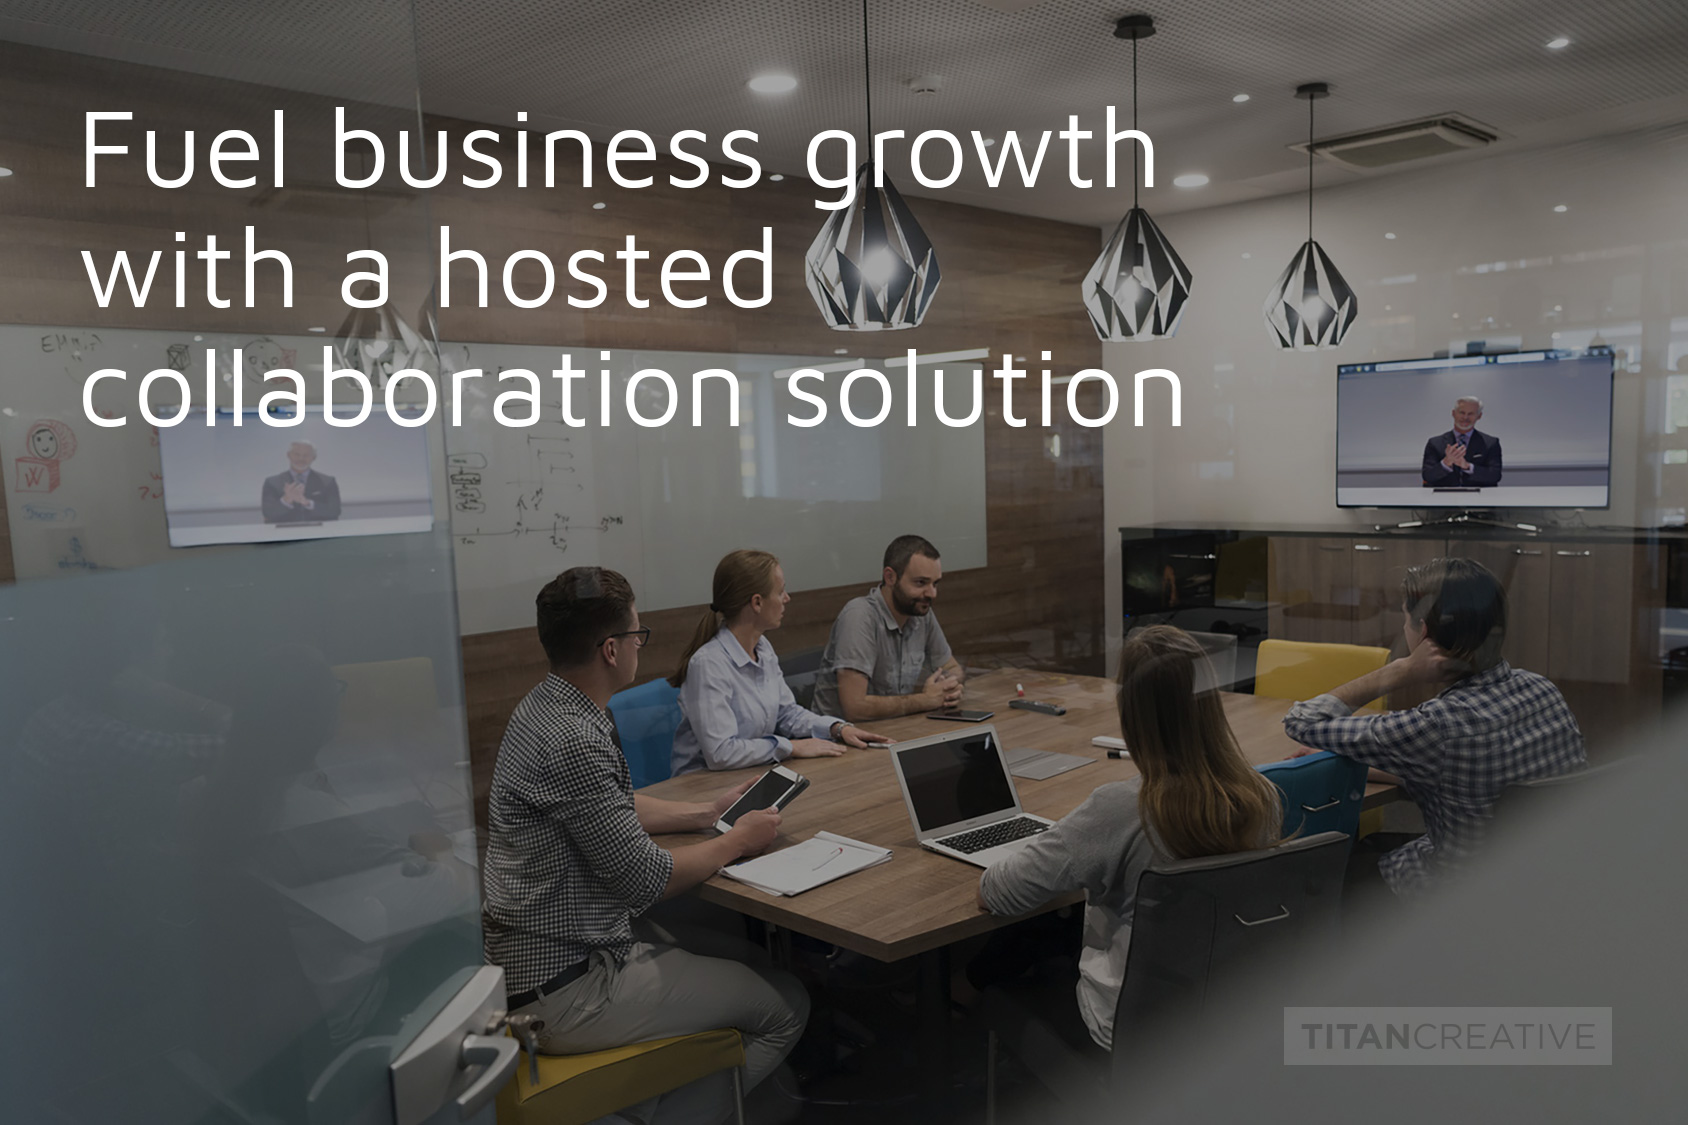 Fuel business growth with a hosted collaboration solution